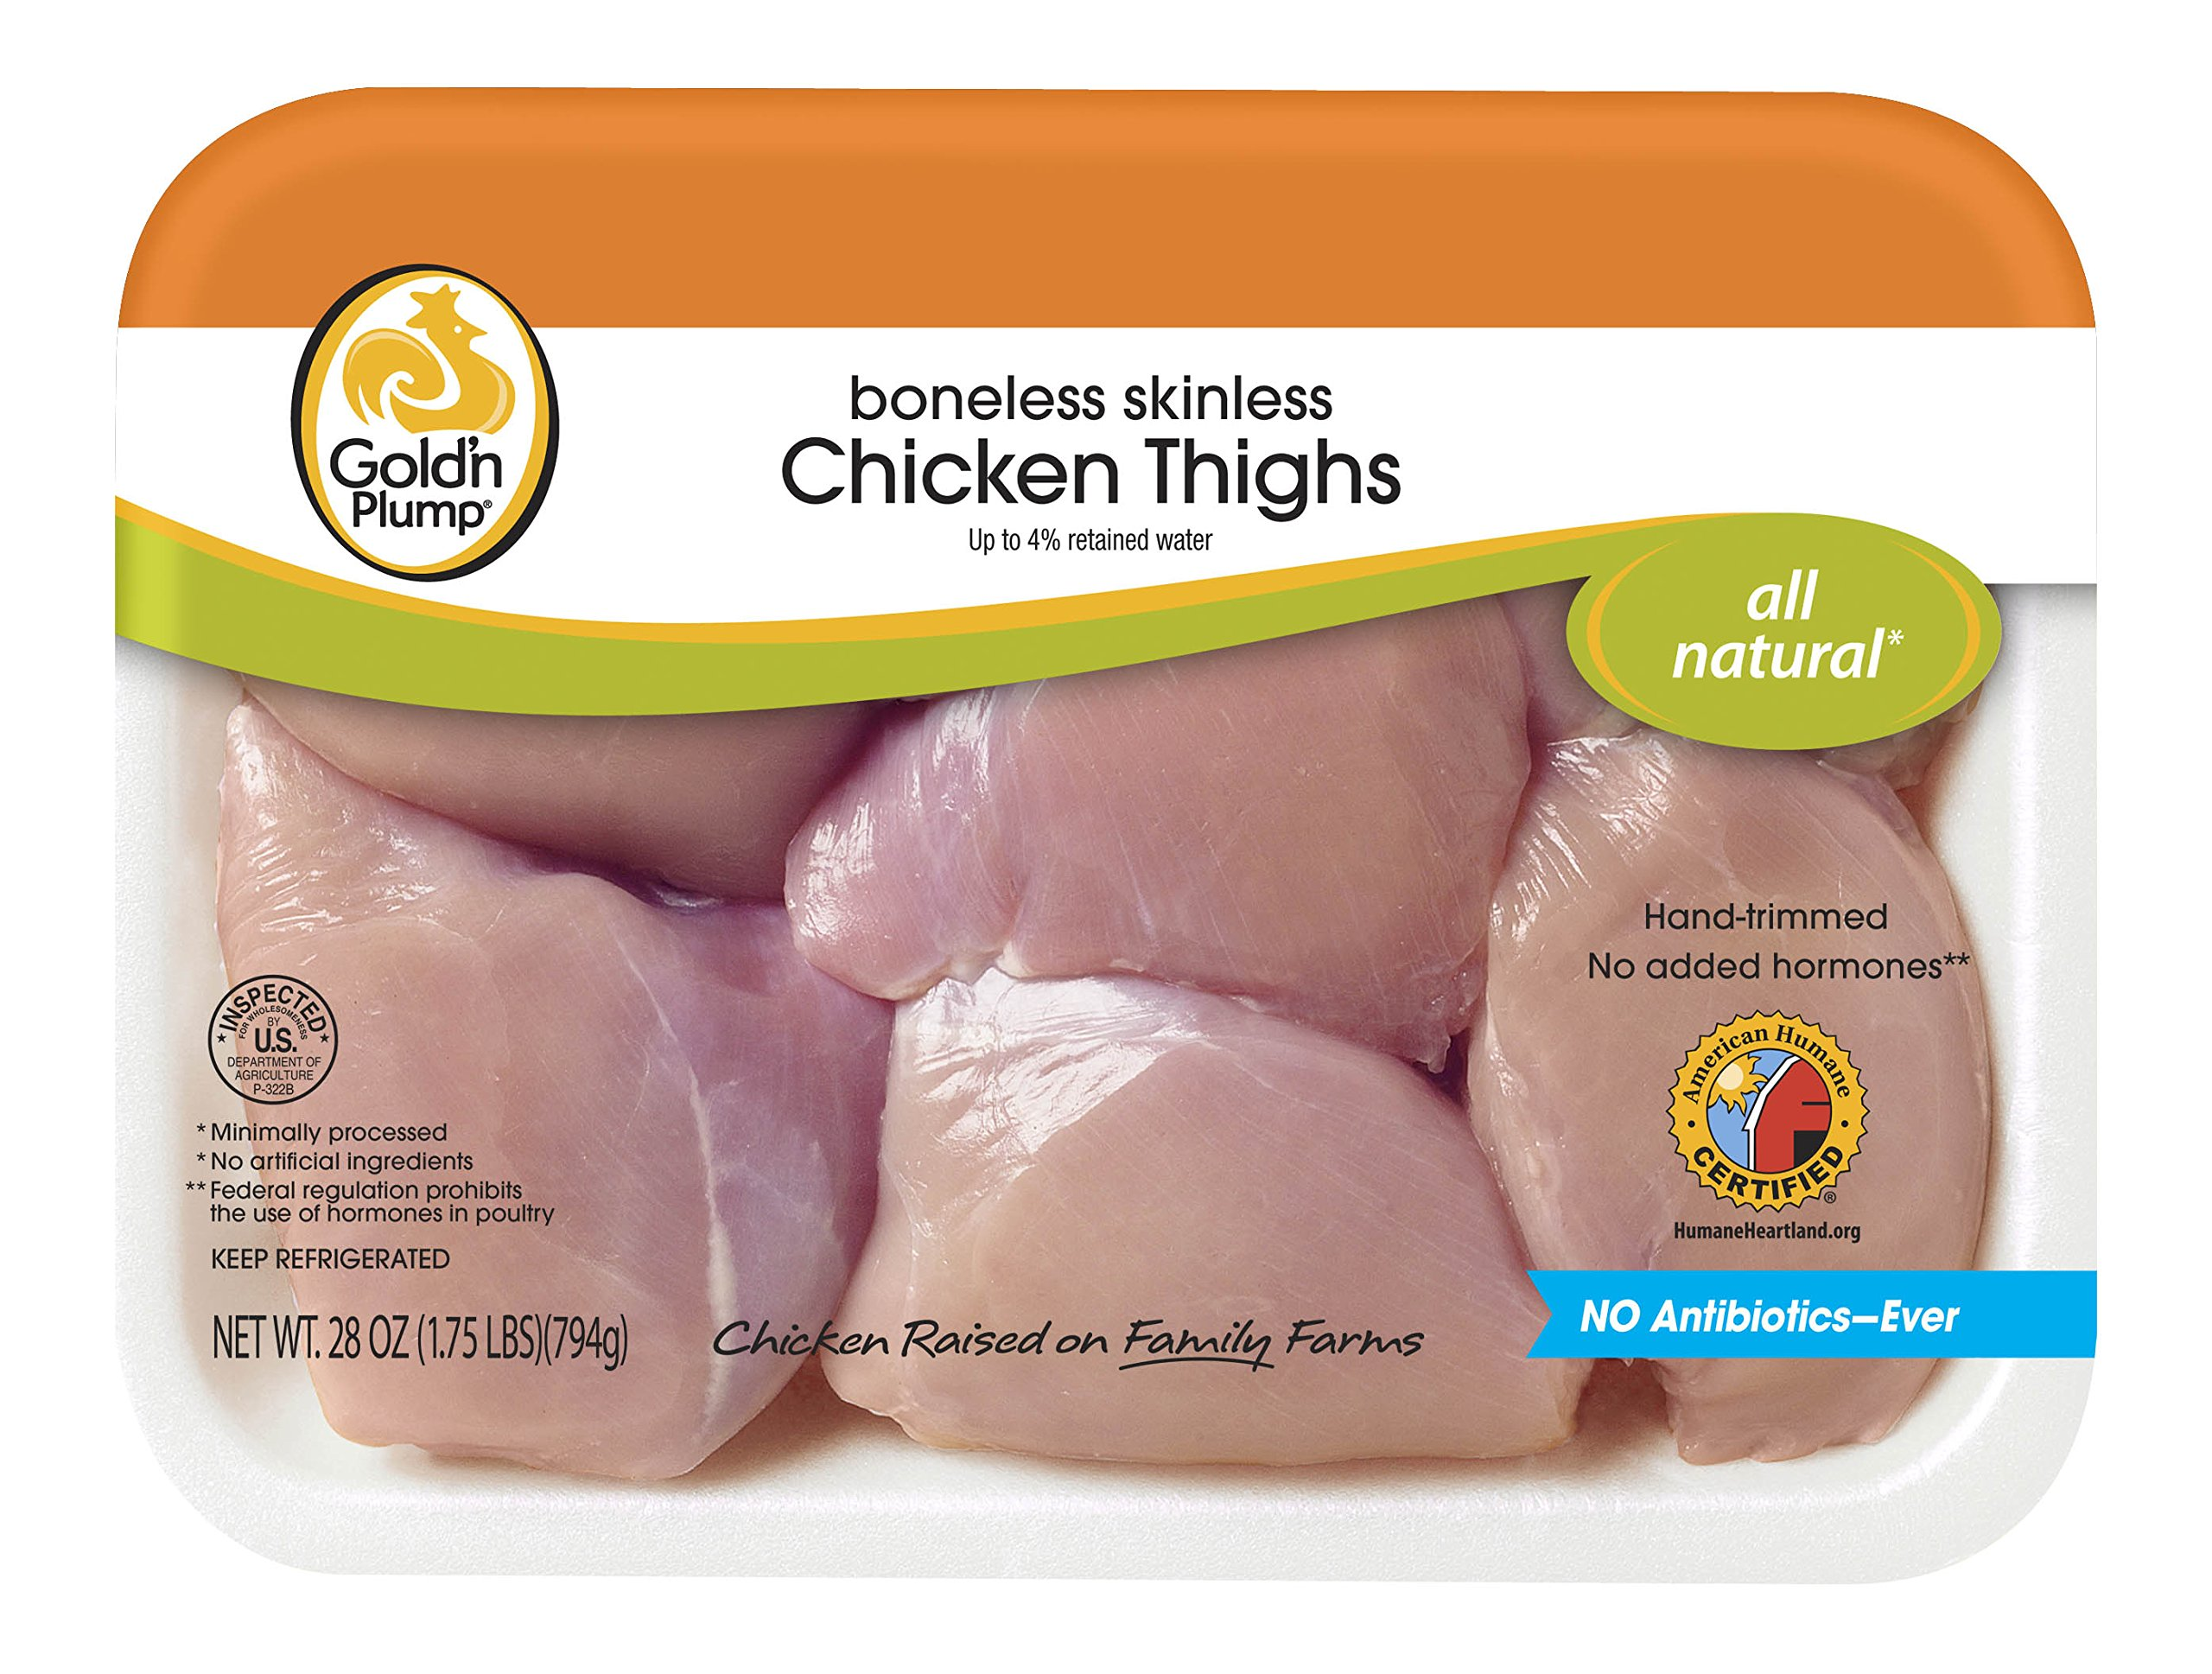 Gold'n Plump, Boneless Skinless Chicken Thighs, 28 oz